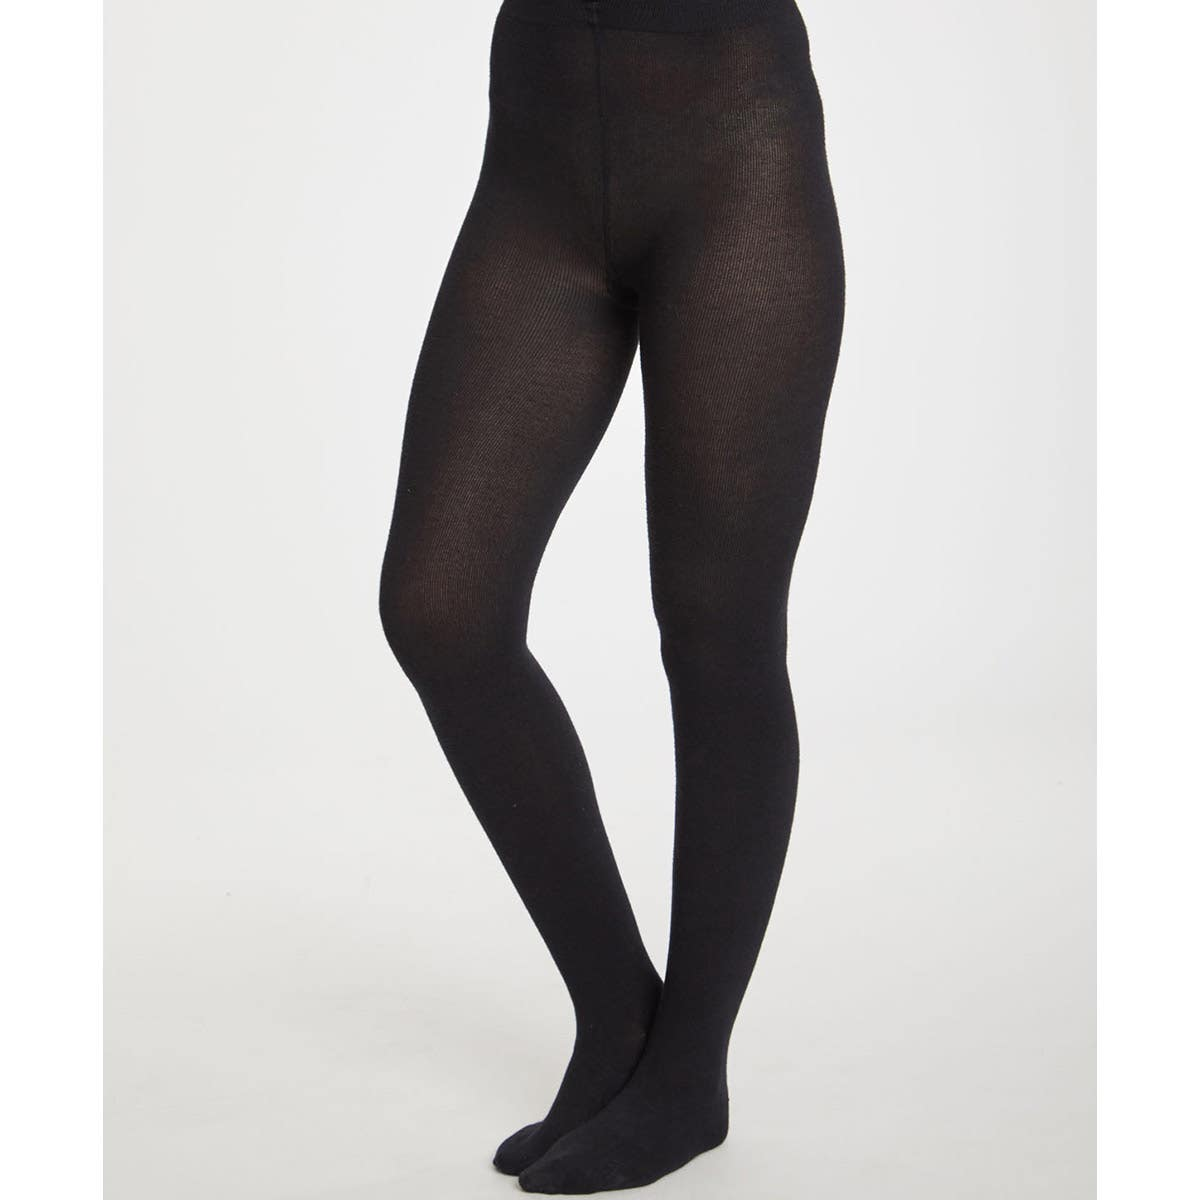 Thought Black Super Soft Bamboo Women's Elgin Tights (Large)